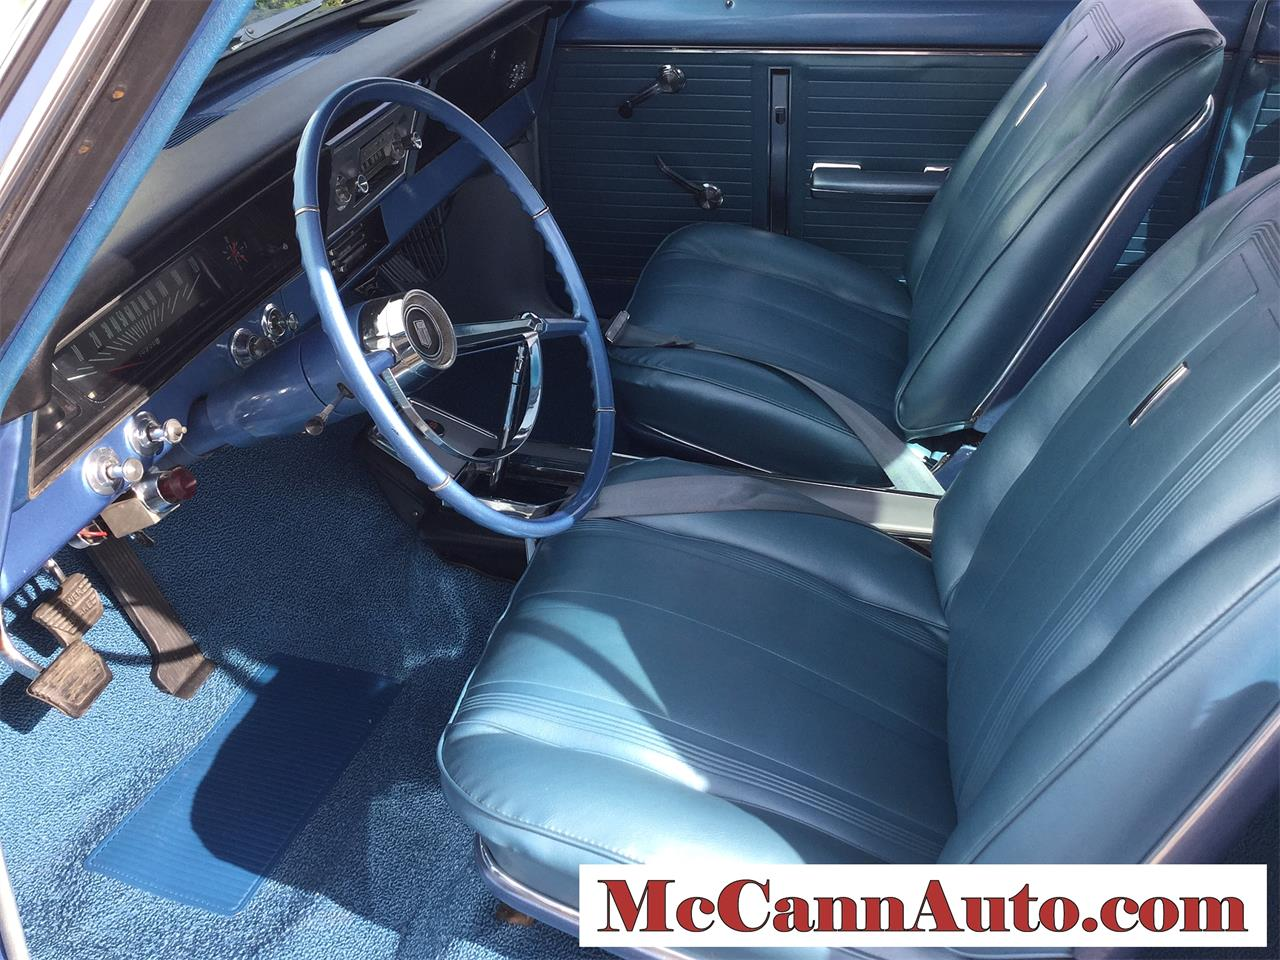 Large Picture of '66 Chevrolet Nova II SS - $76,900.00 Offered by a Private Seller - JQ4K